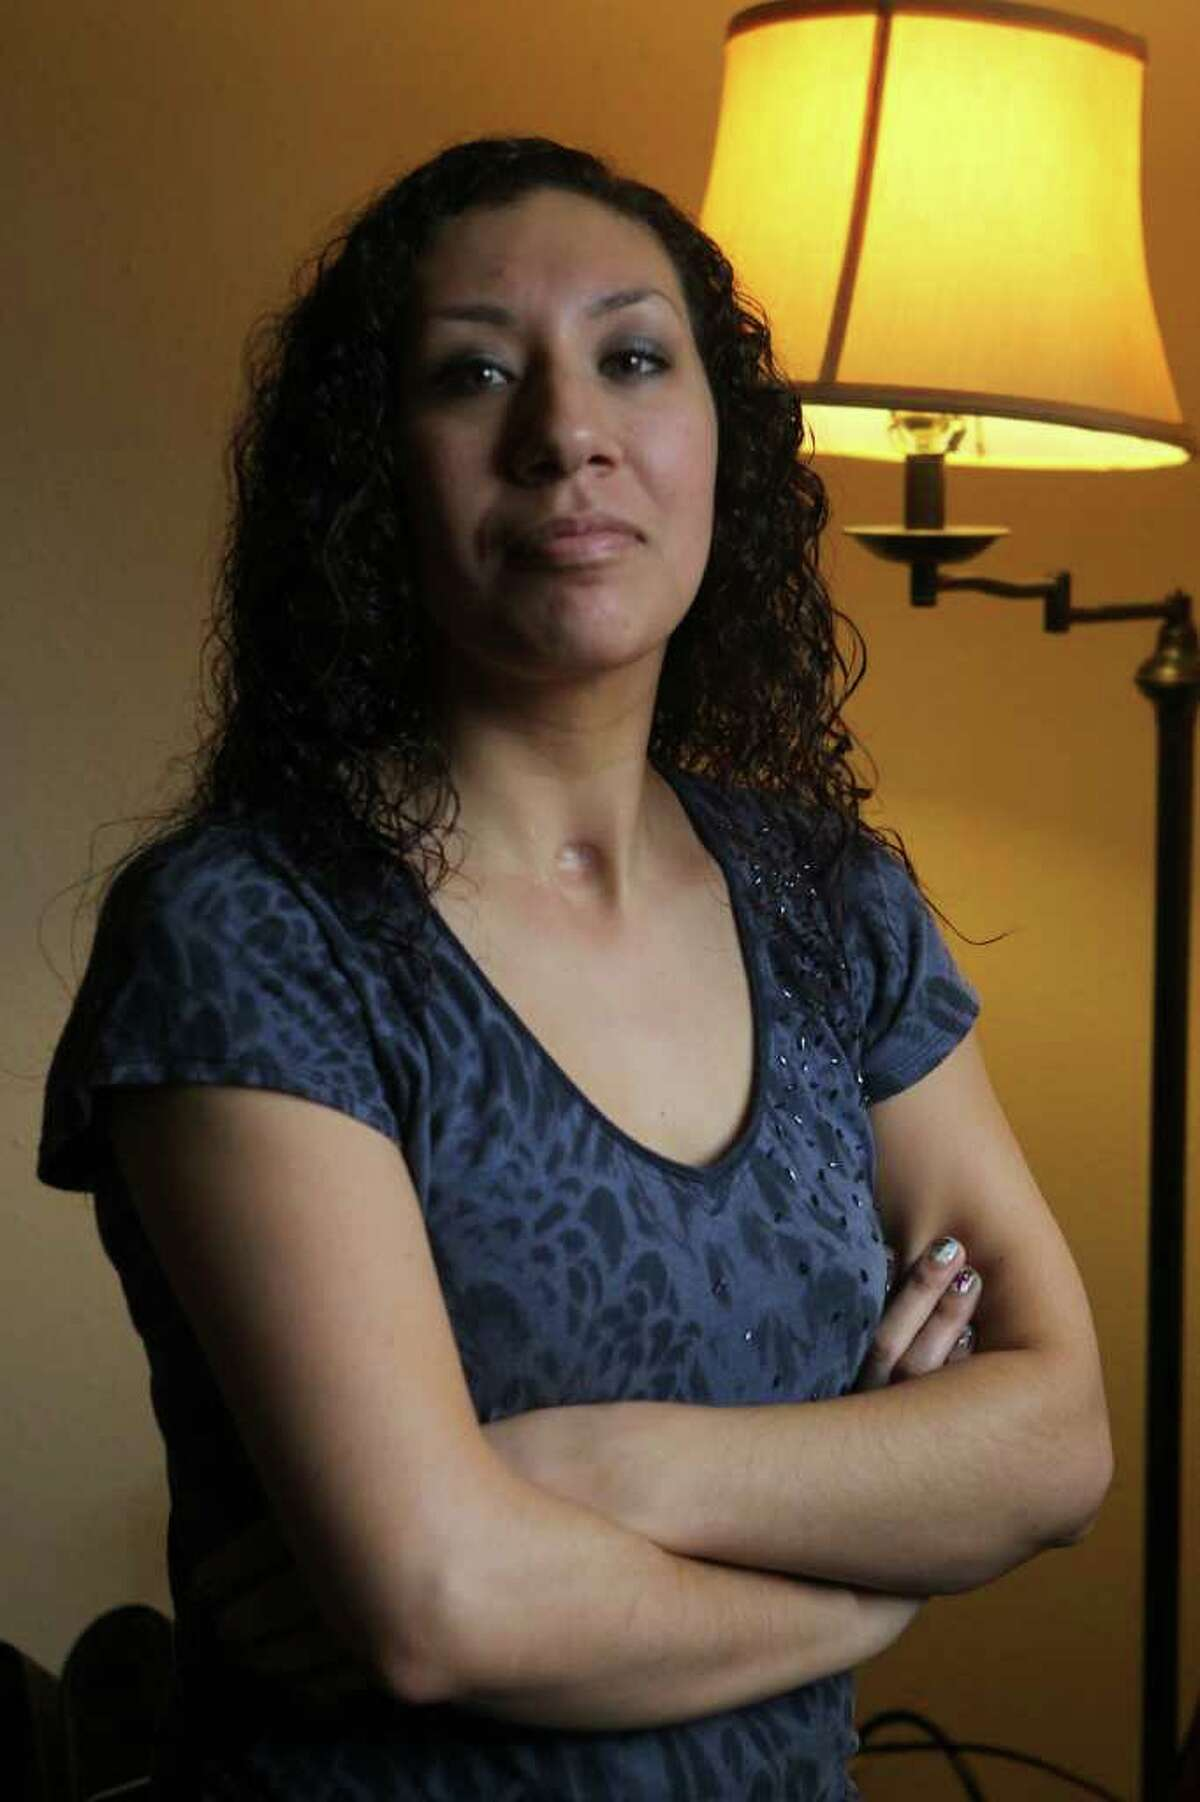 Vanessa Samudio was hit by a San Antonio police cruiser a few years ago and suffered brain damage as a result.